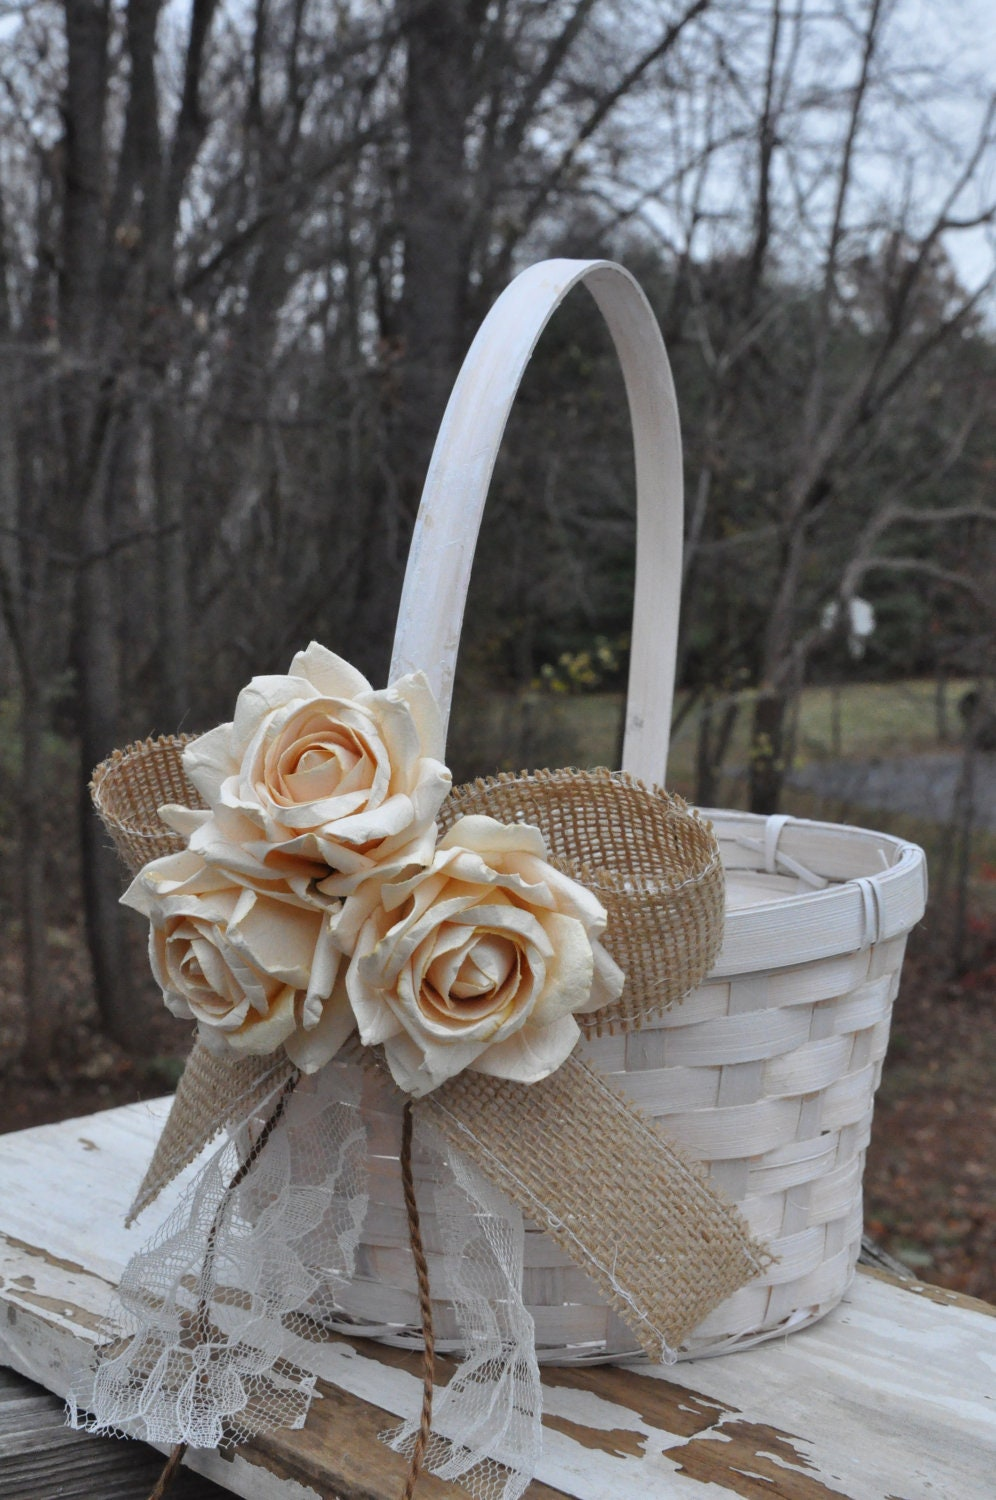 How To Make Flowers Girl Basket : Burlap and lace flower girl basket rustic